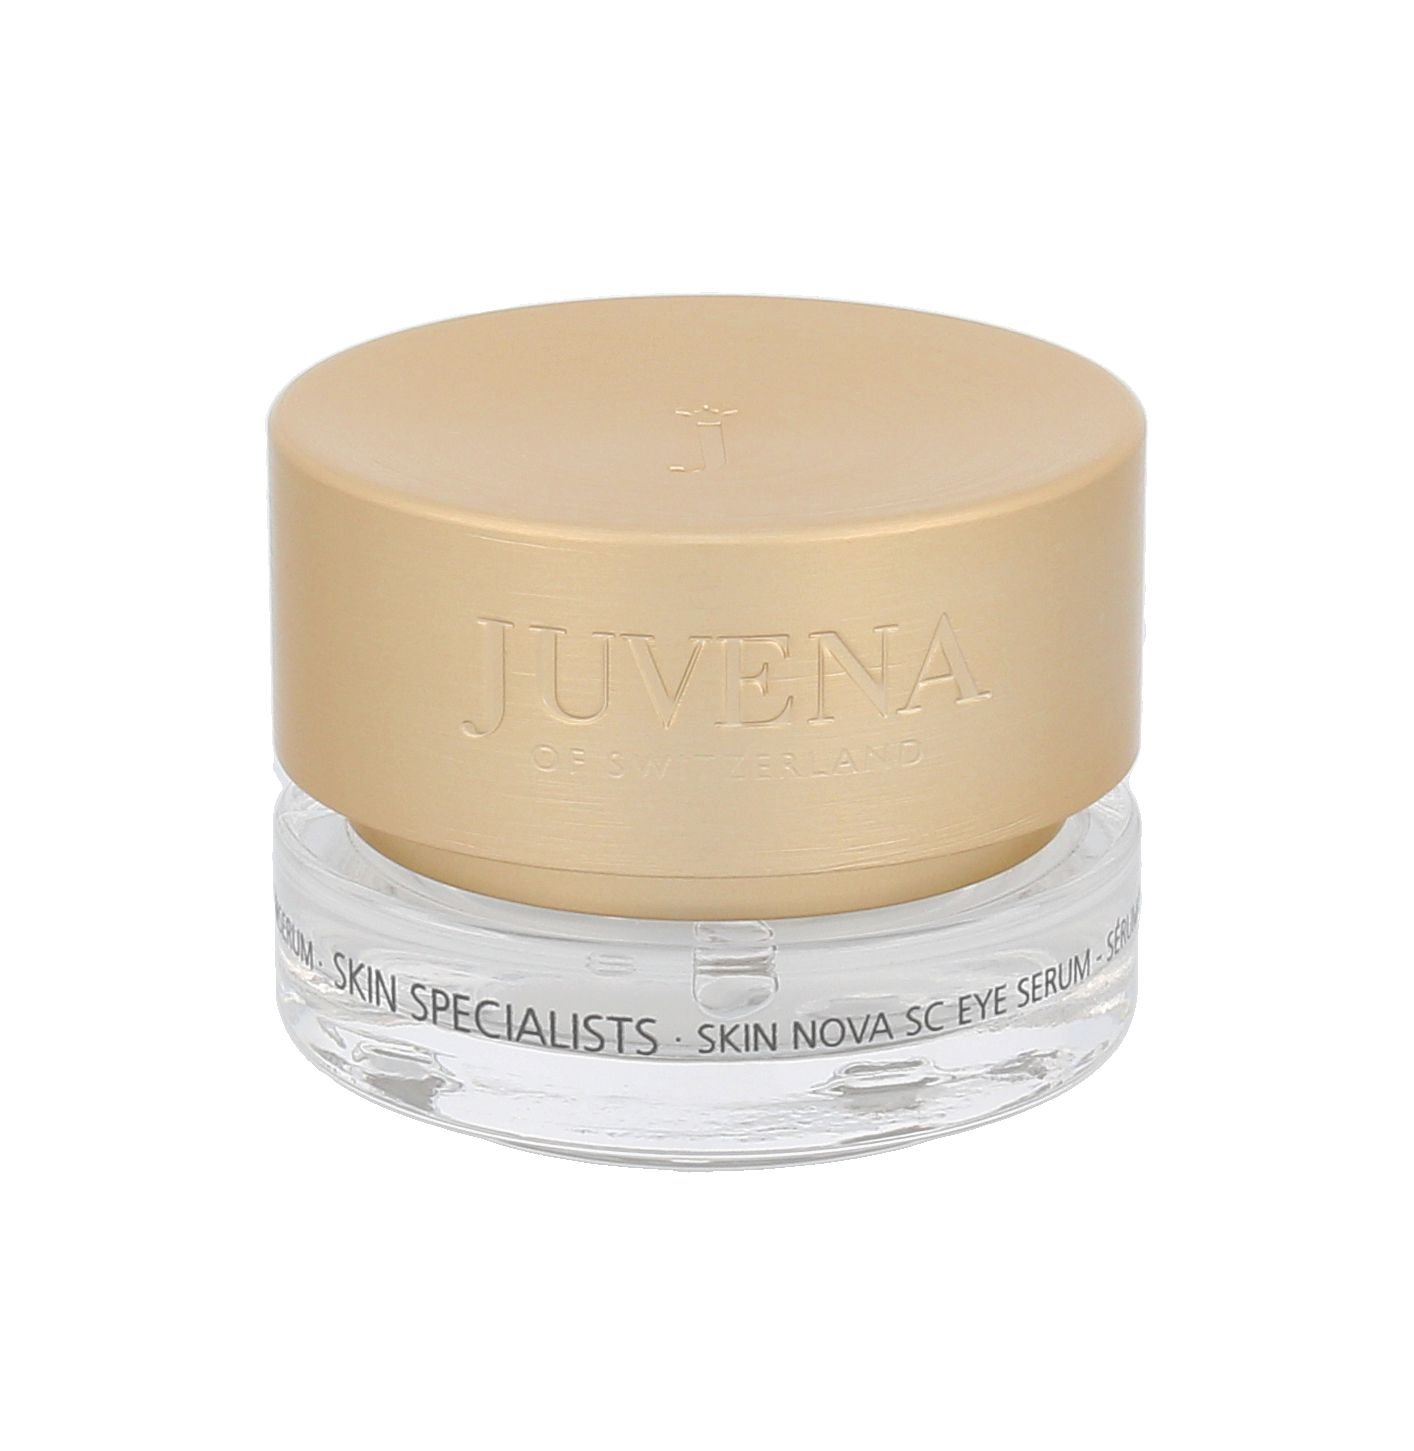 Juvena Skin Specialist Cosmetic 15ml